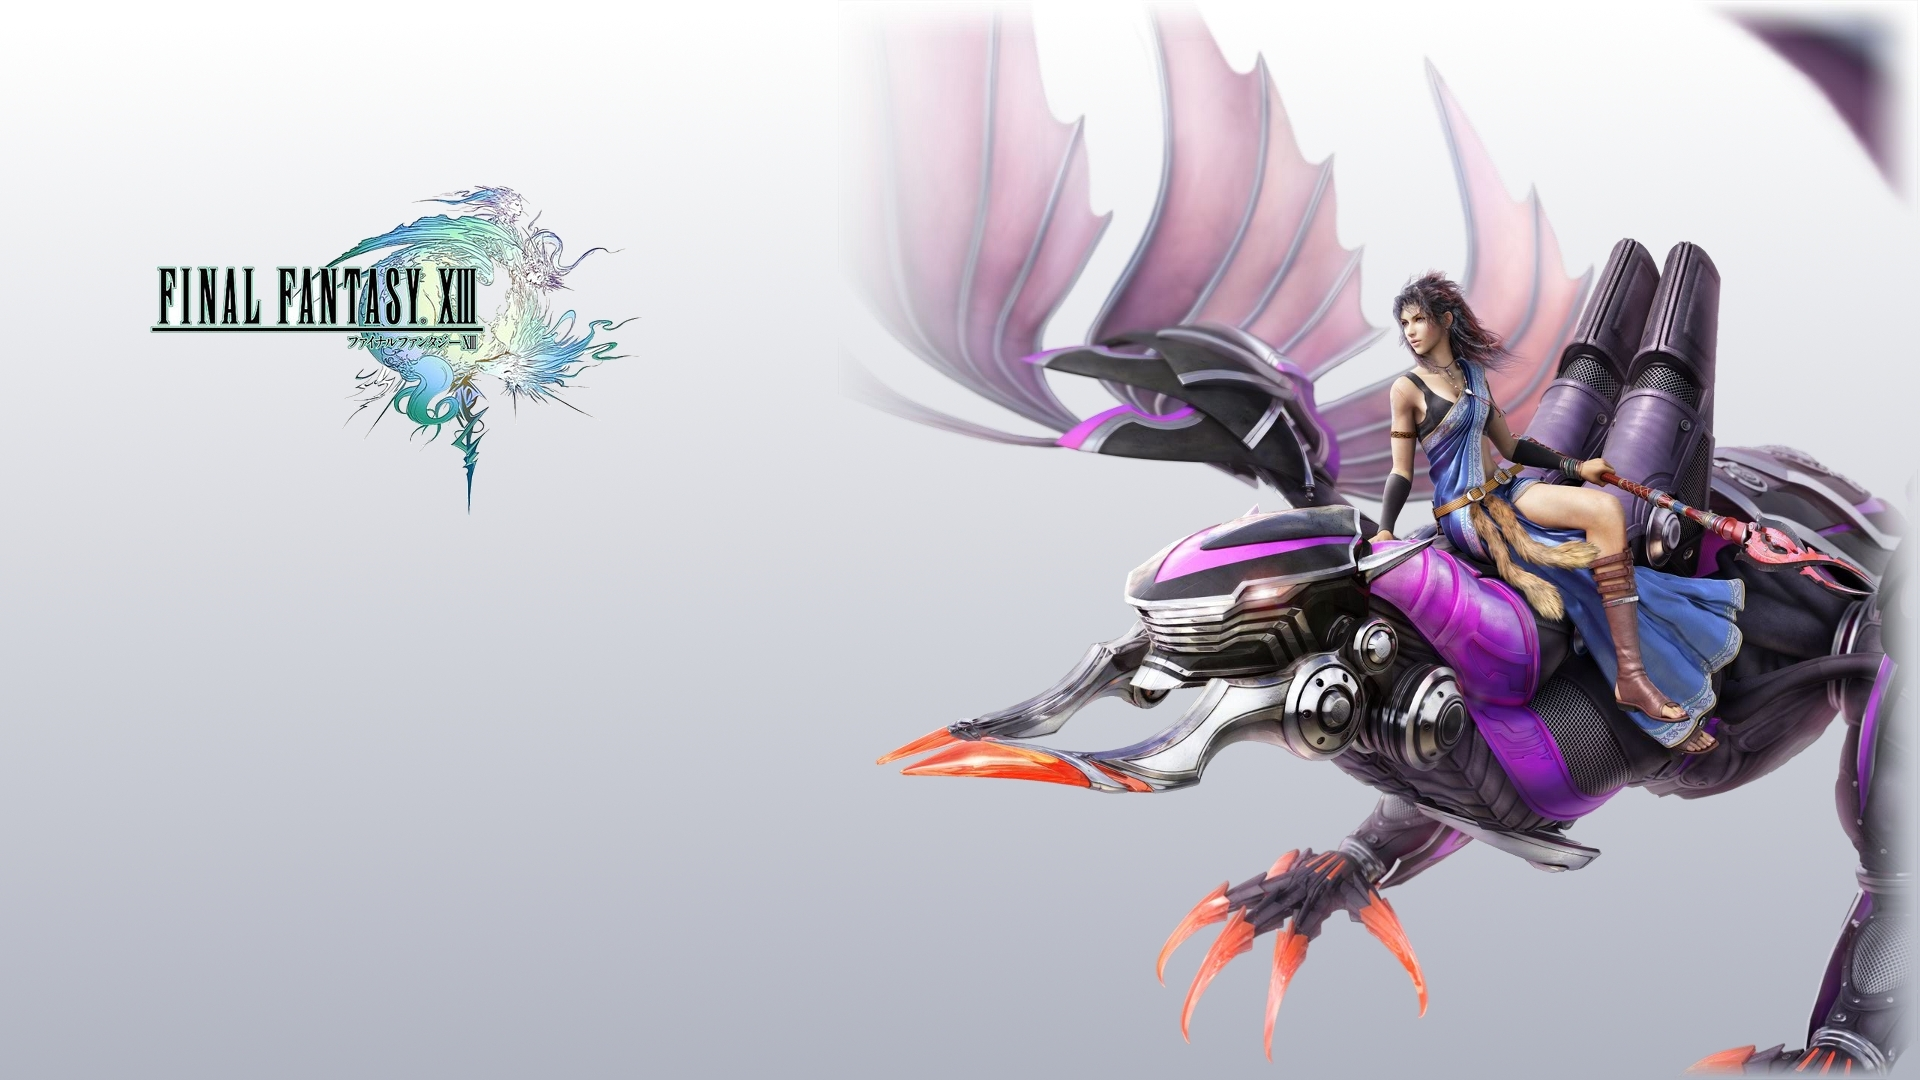 bahamut Made for ps3 HD Wallpaper